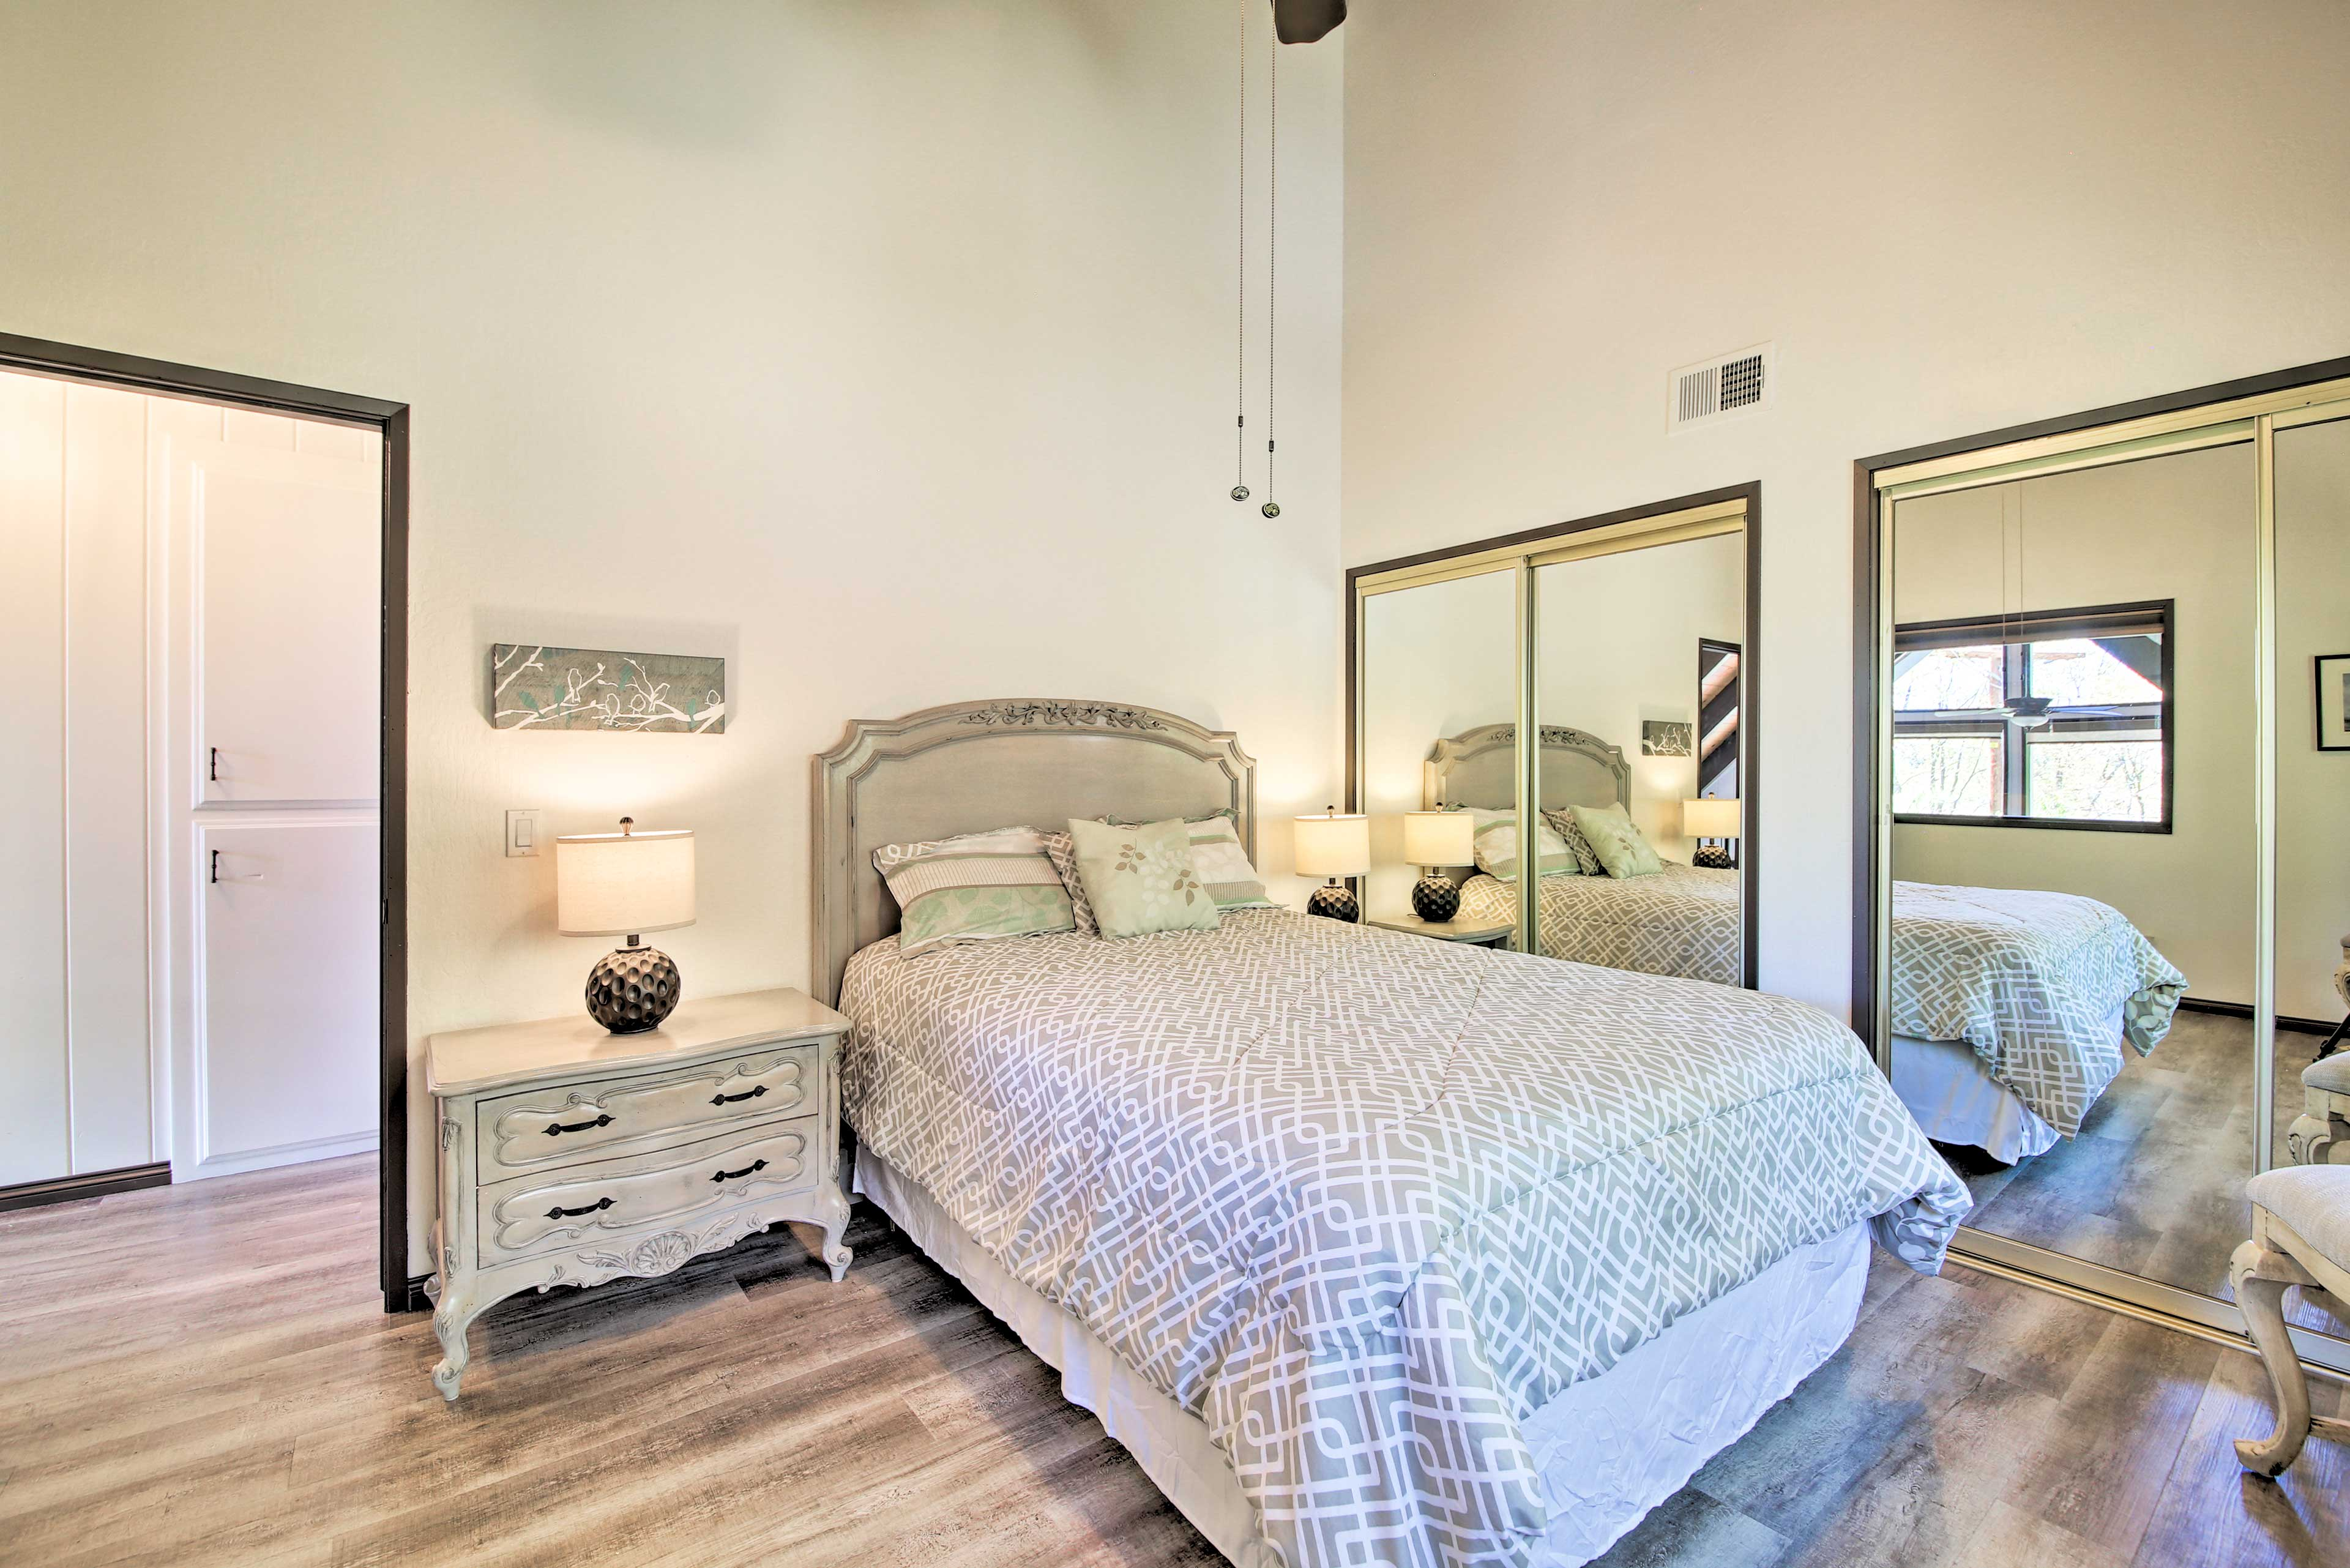 Another queen bed can be found in this second bedroom.